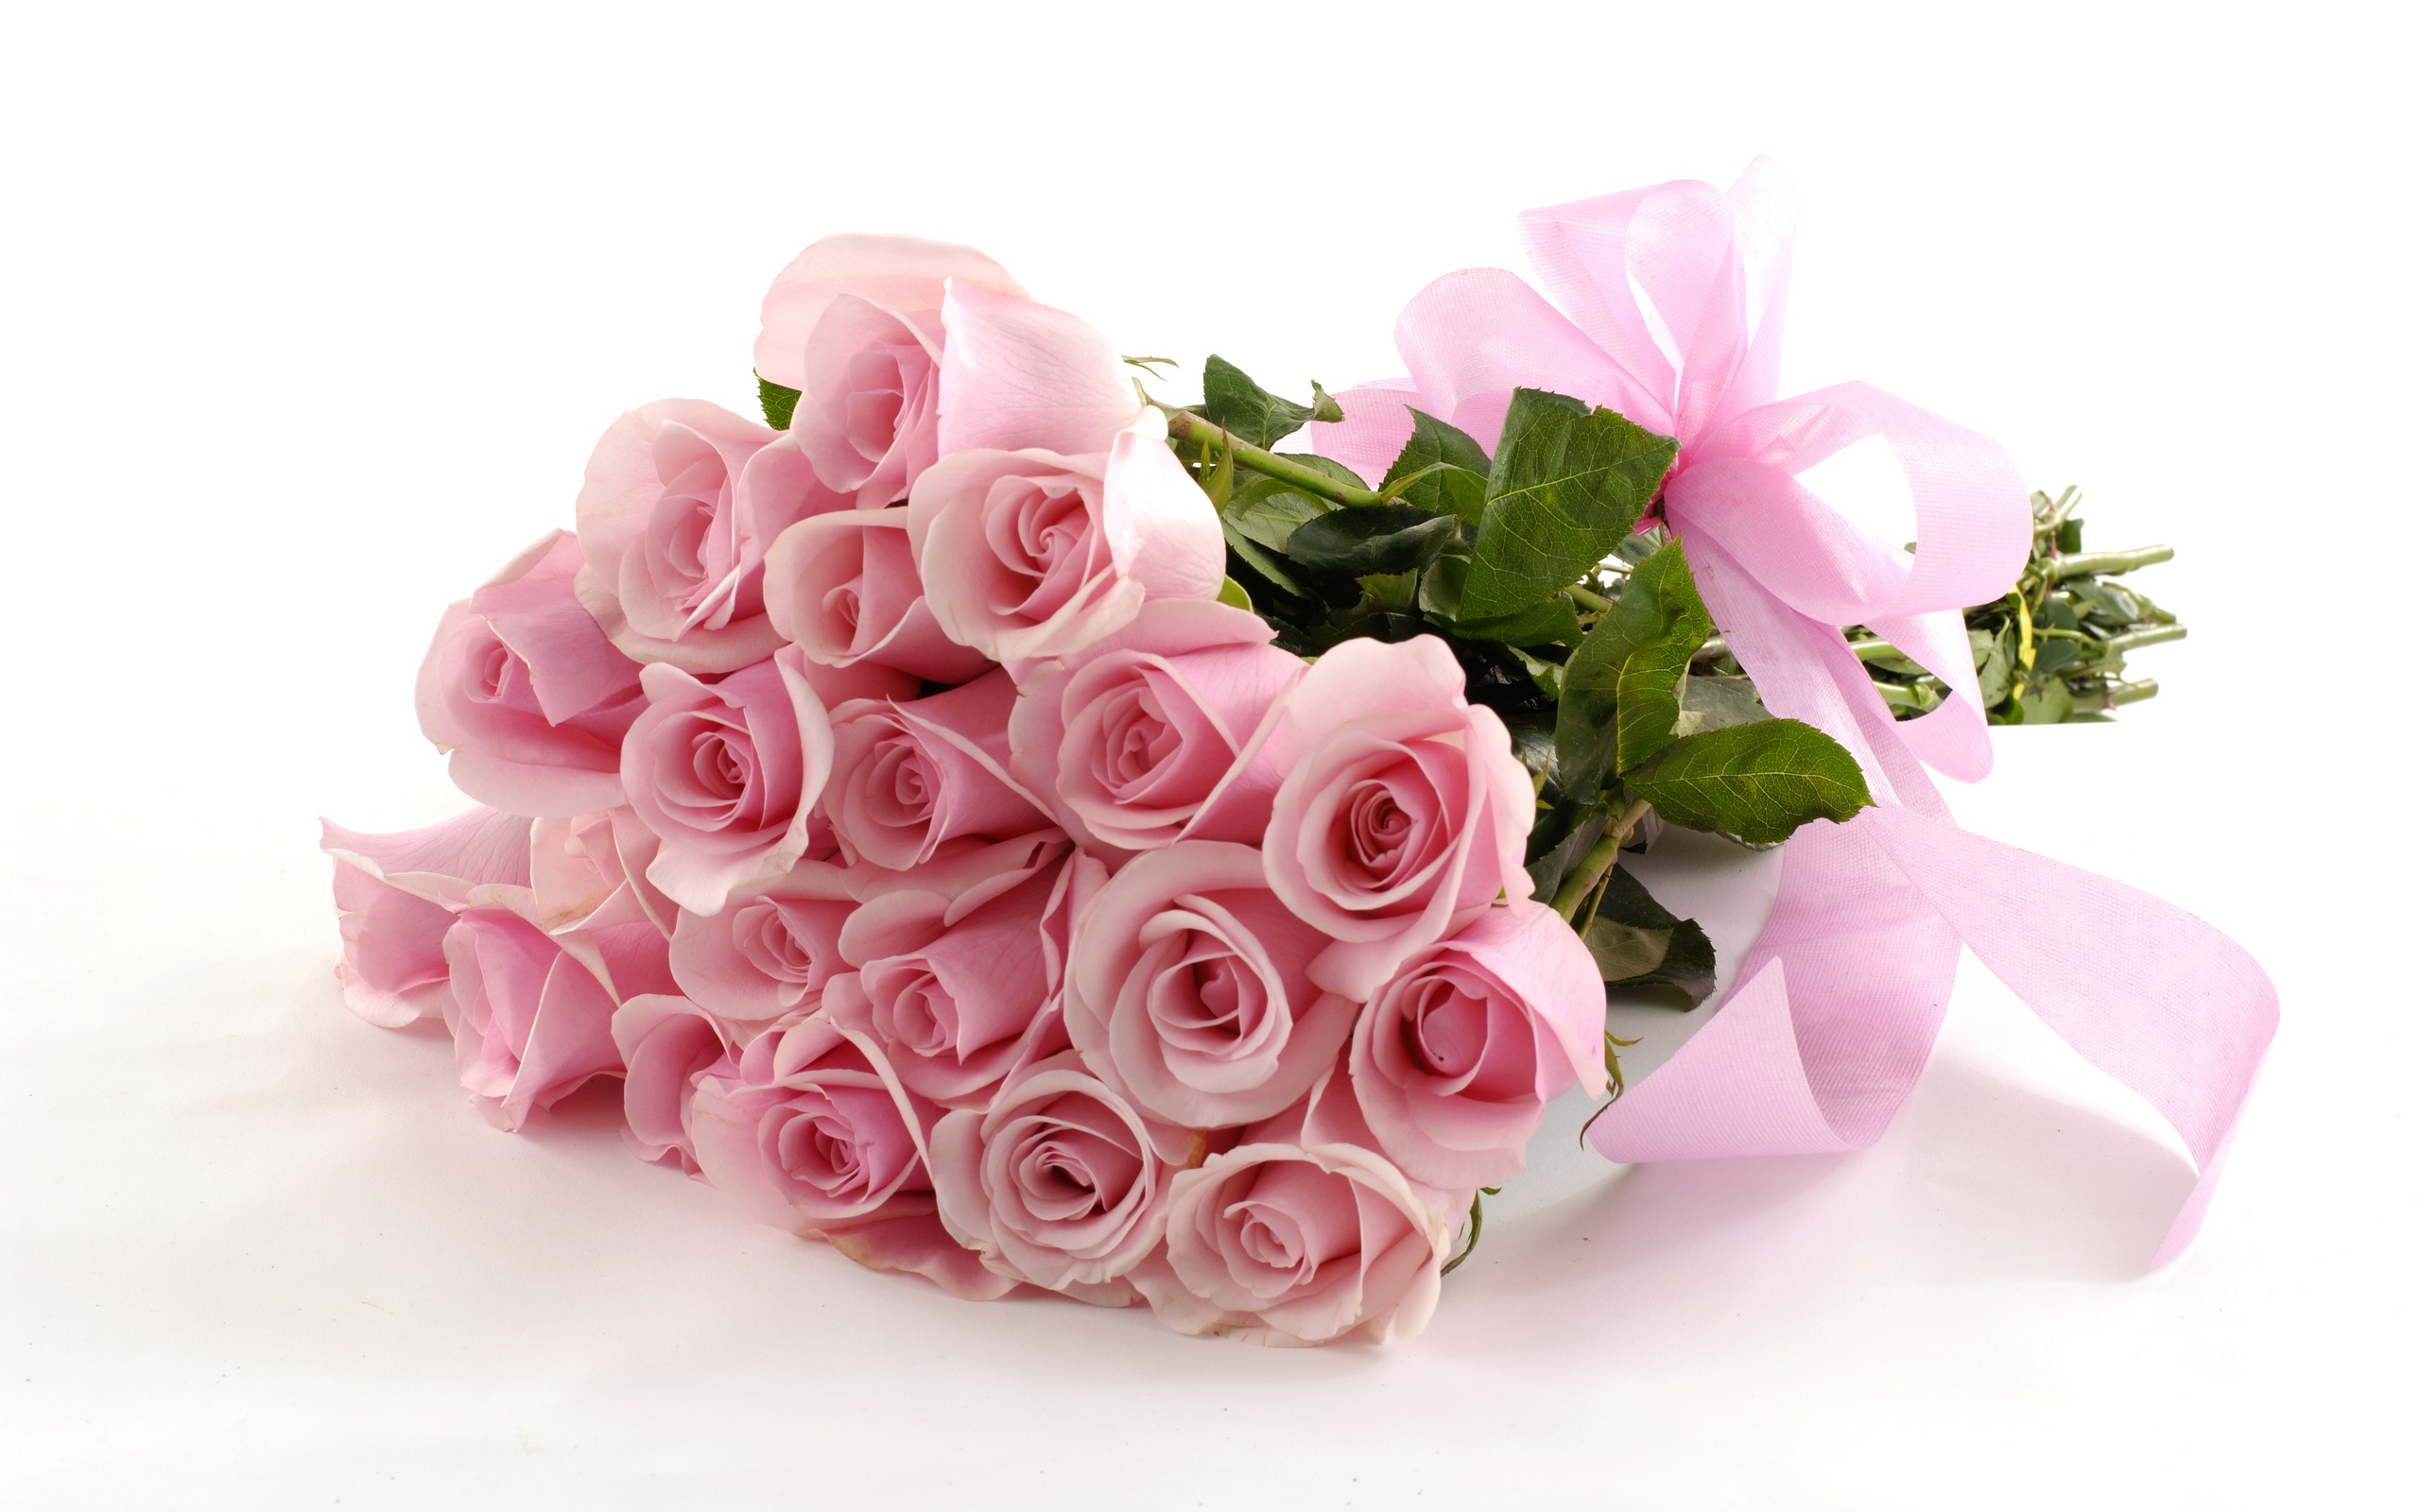 Pink roses free wallpaper wallpaper high definition - Bunch of roses hd images ...